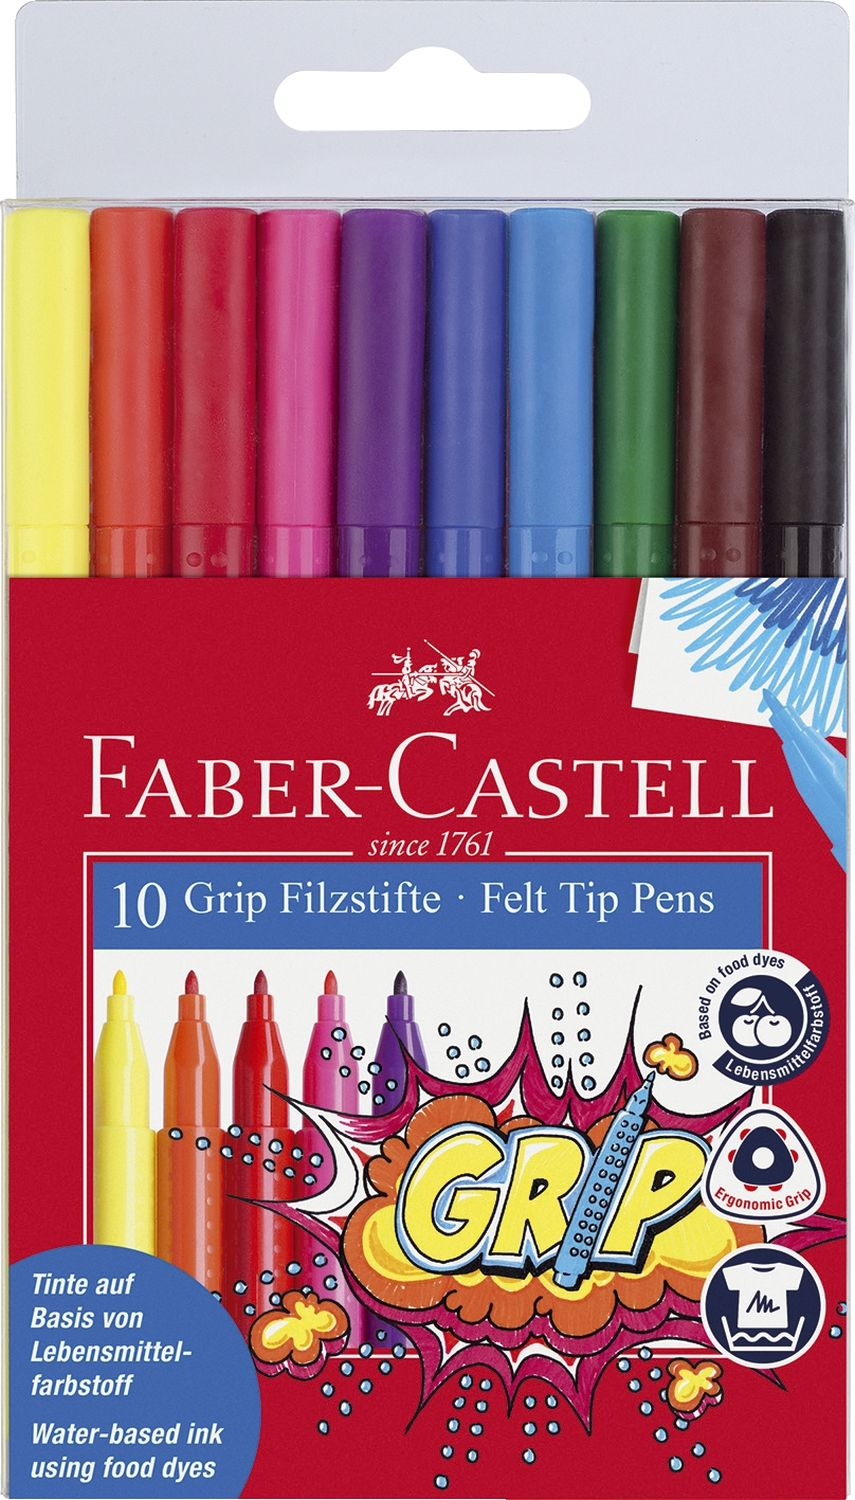 Faber-Castell Colour Grip Filzstifte, 10er Etui